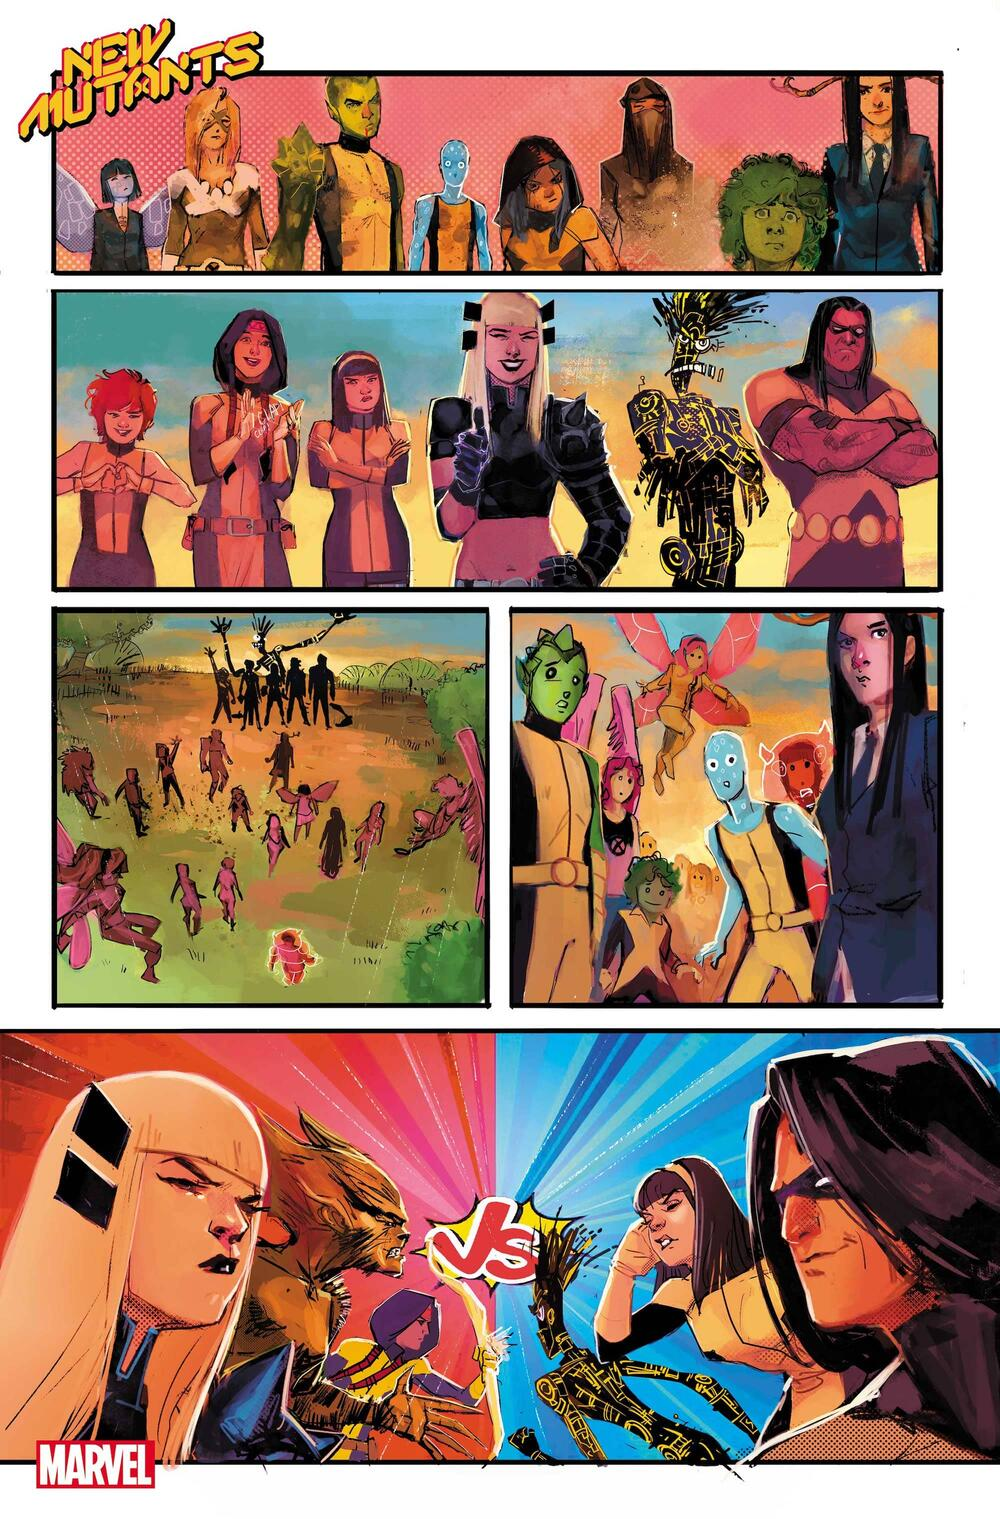 NEW MUTANTS #14 preview art by Rod Reis